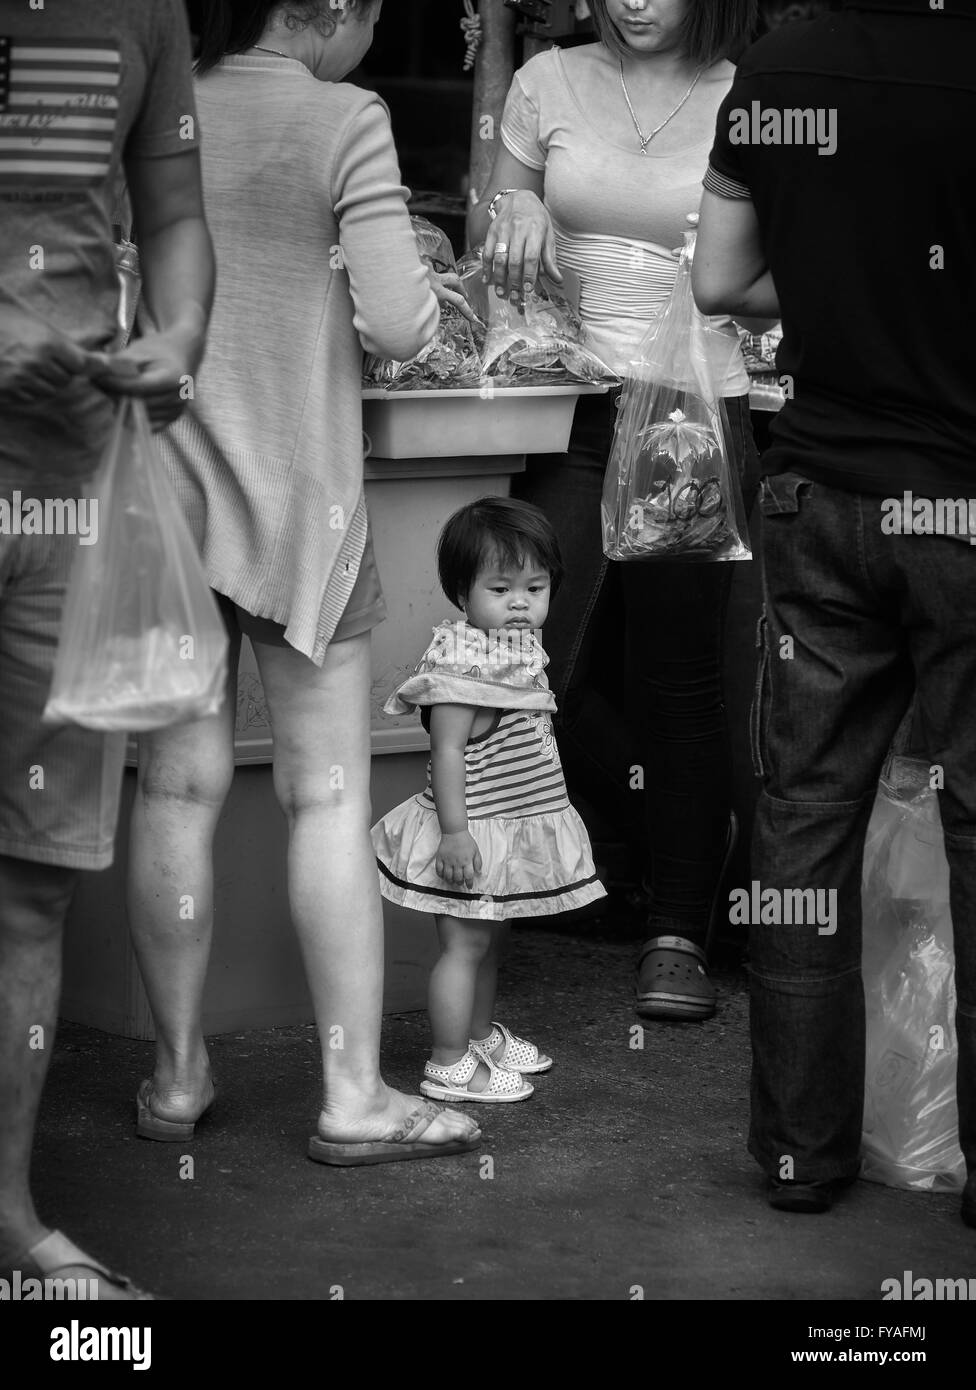 Small child in a grown up world Black and white photography - Stock Image